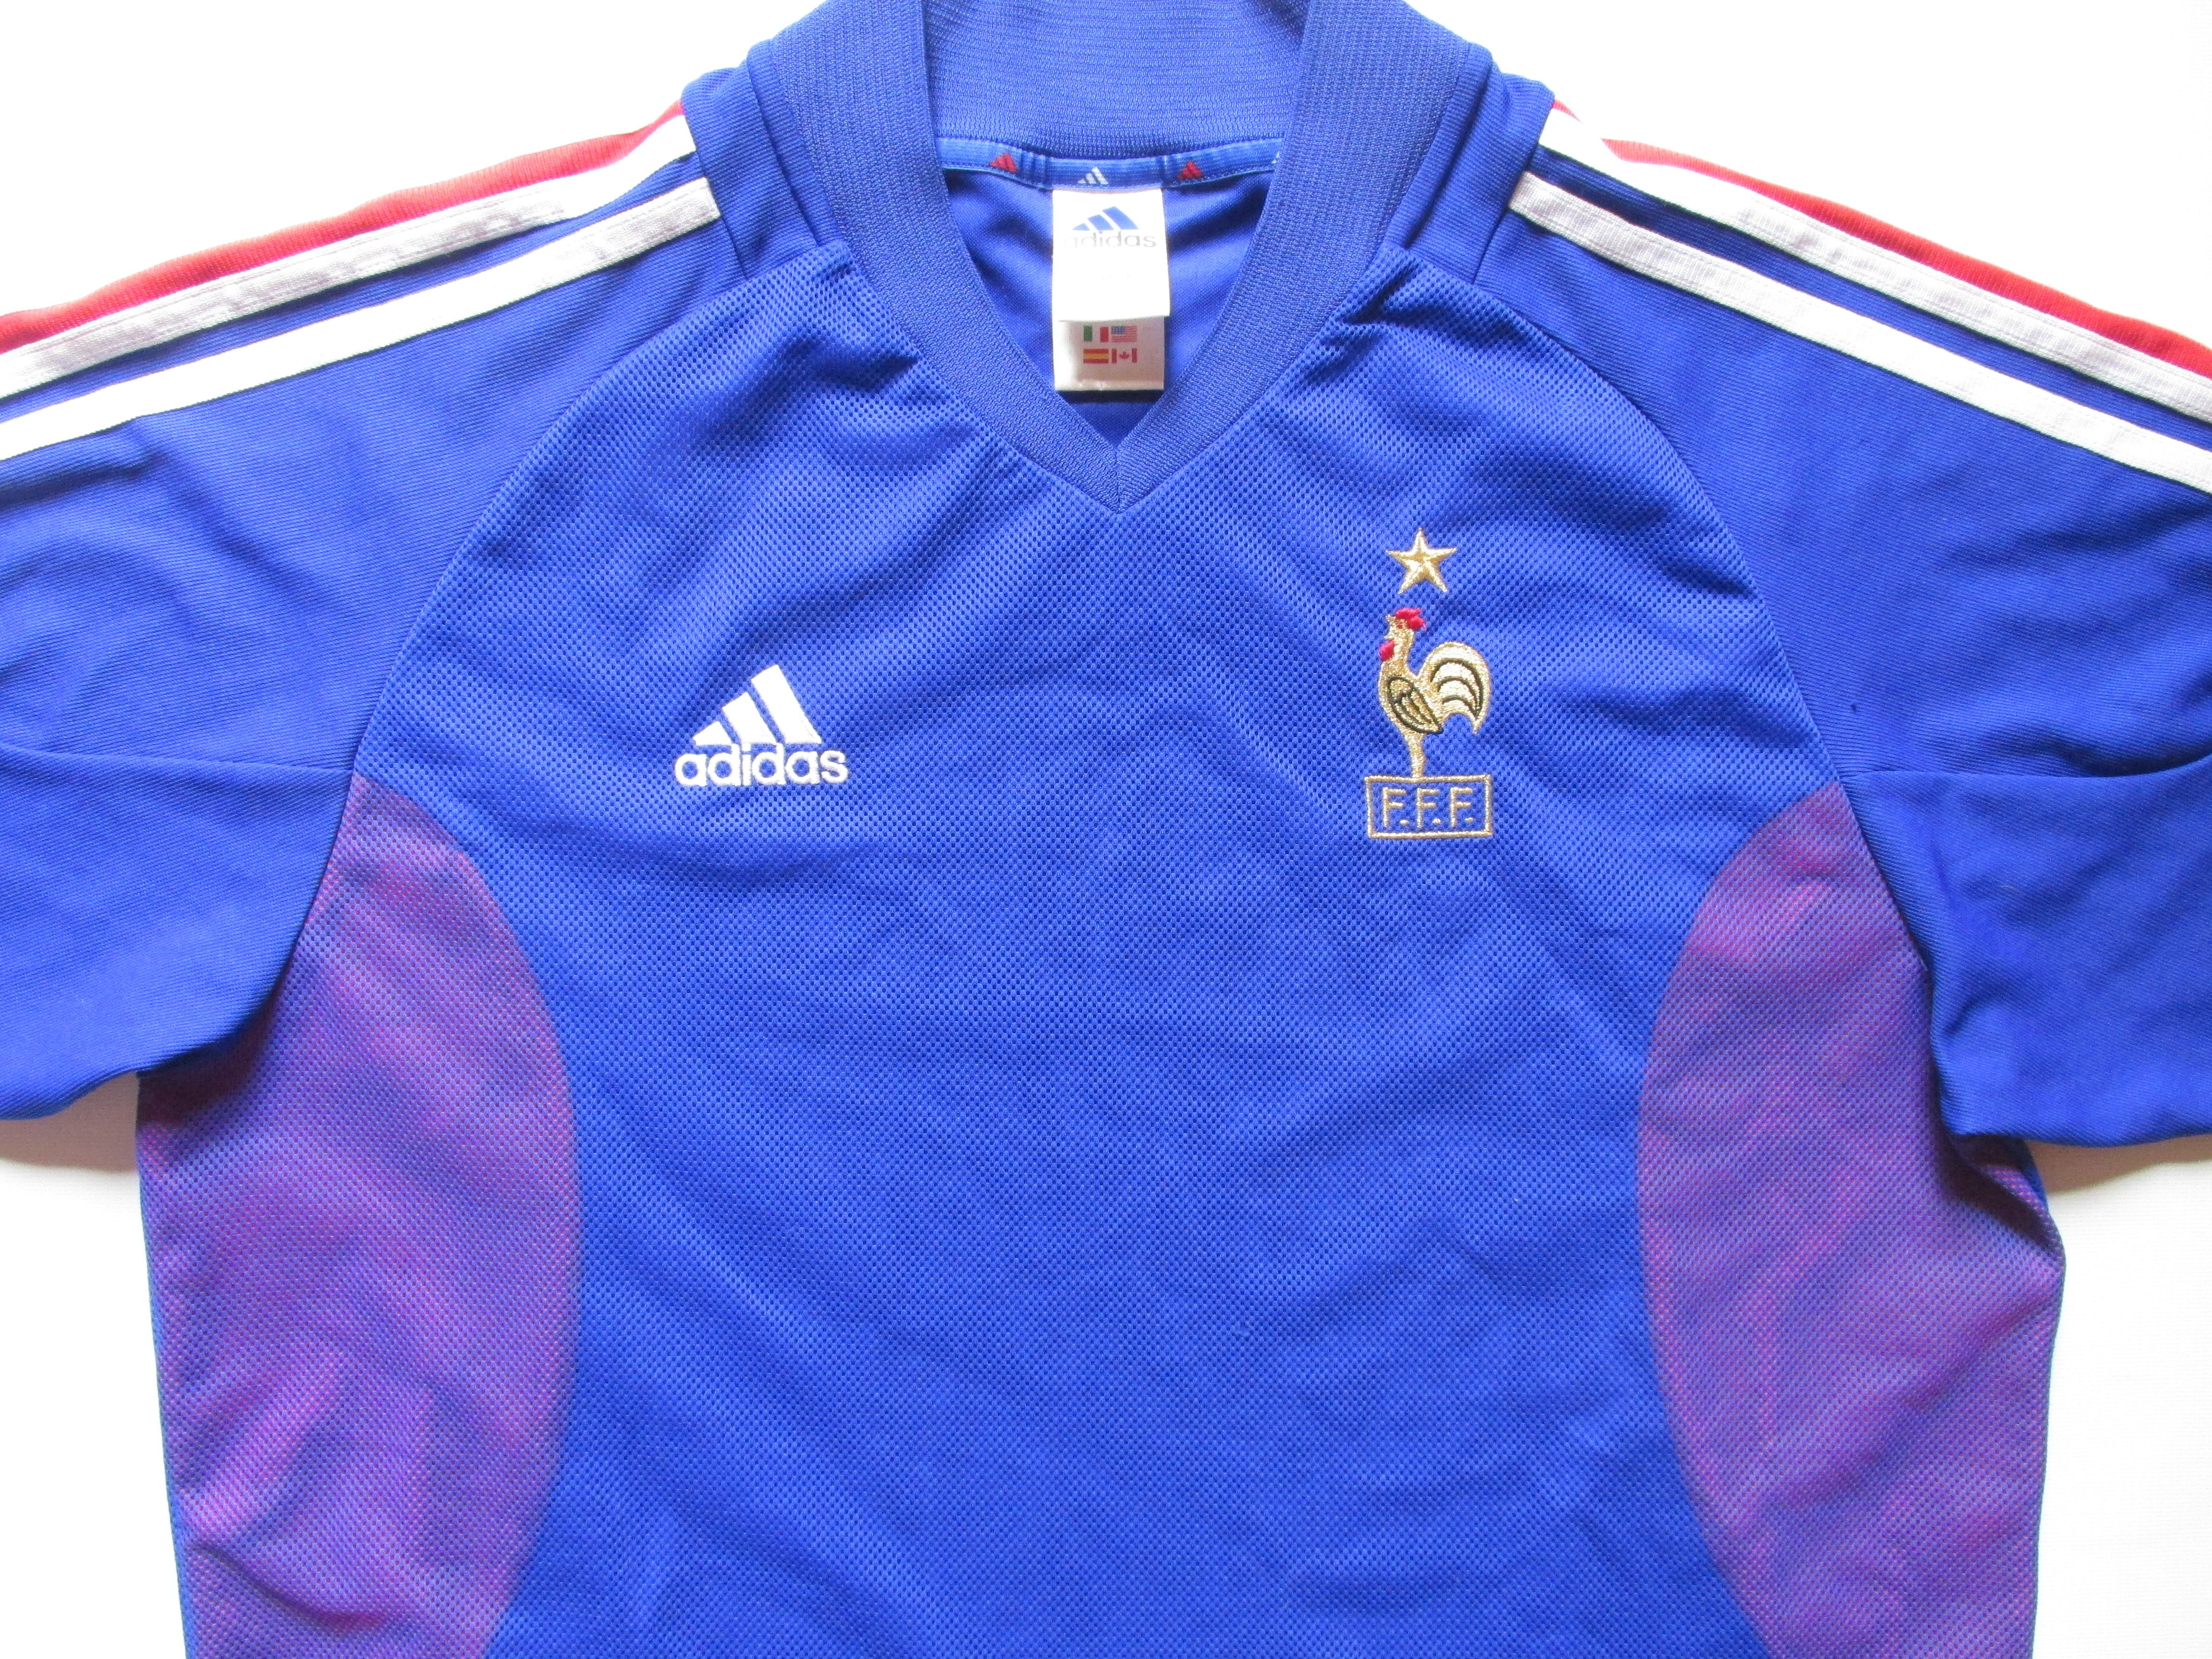 France 2002 2003 2004 home football shirt by Adidas maillot FFF WorldCup  vintage soccer jersey  france  FFF  adidas  worldcup  jersey  soccer   football   ... 74204bea8